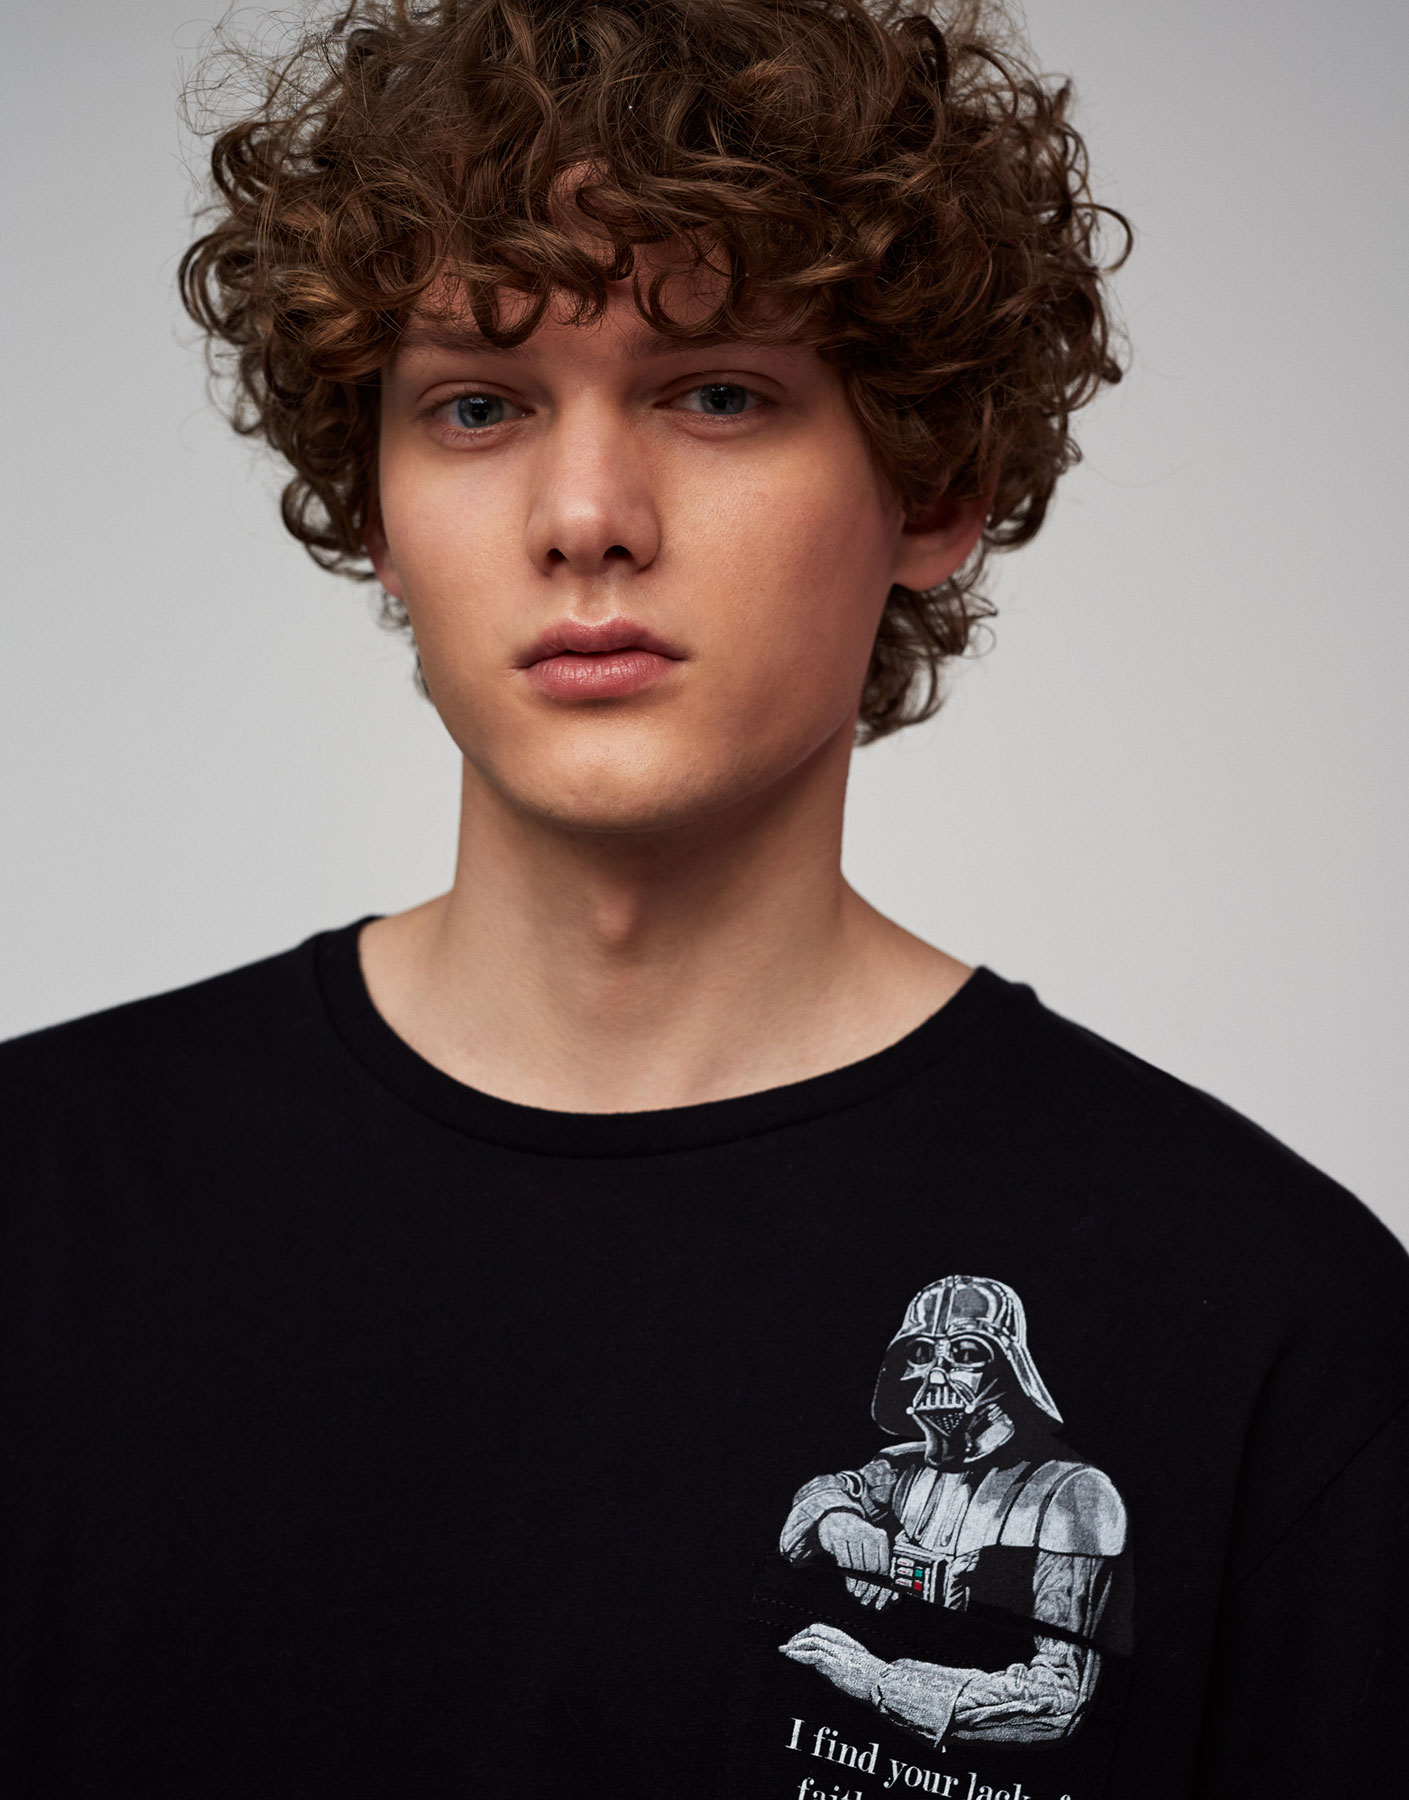 Long sleeve Star Wars top